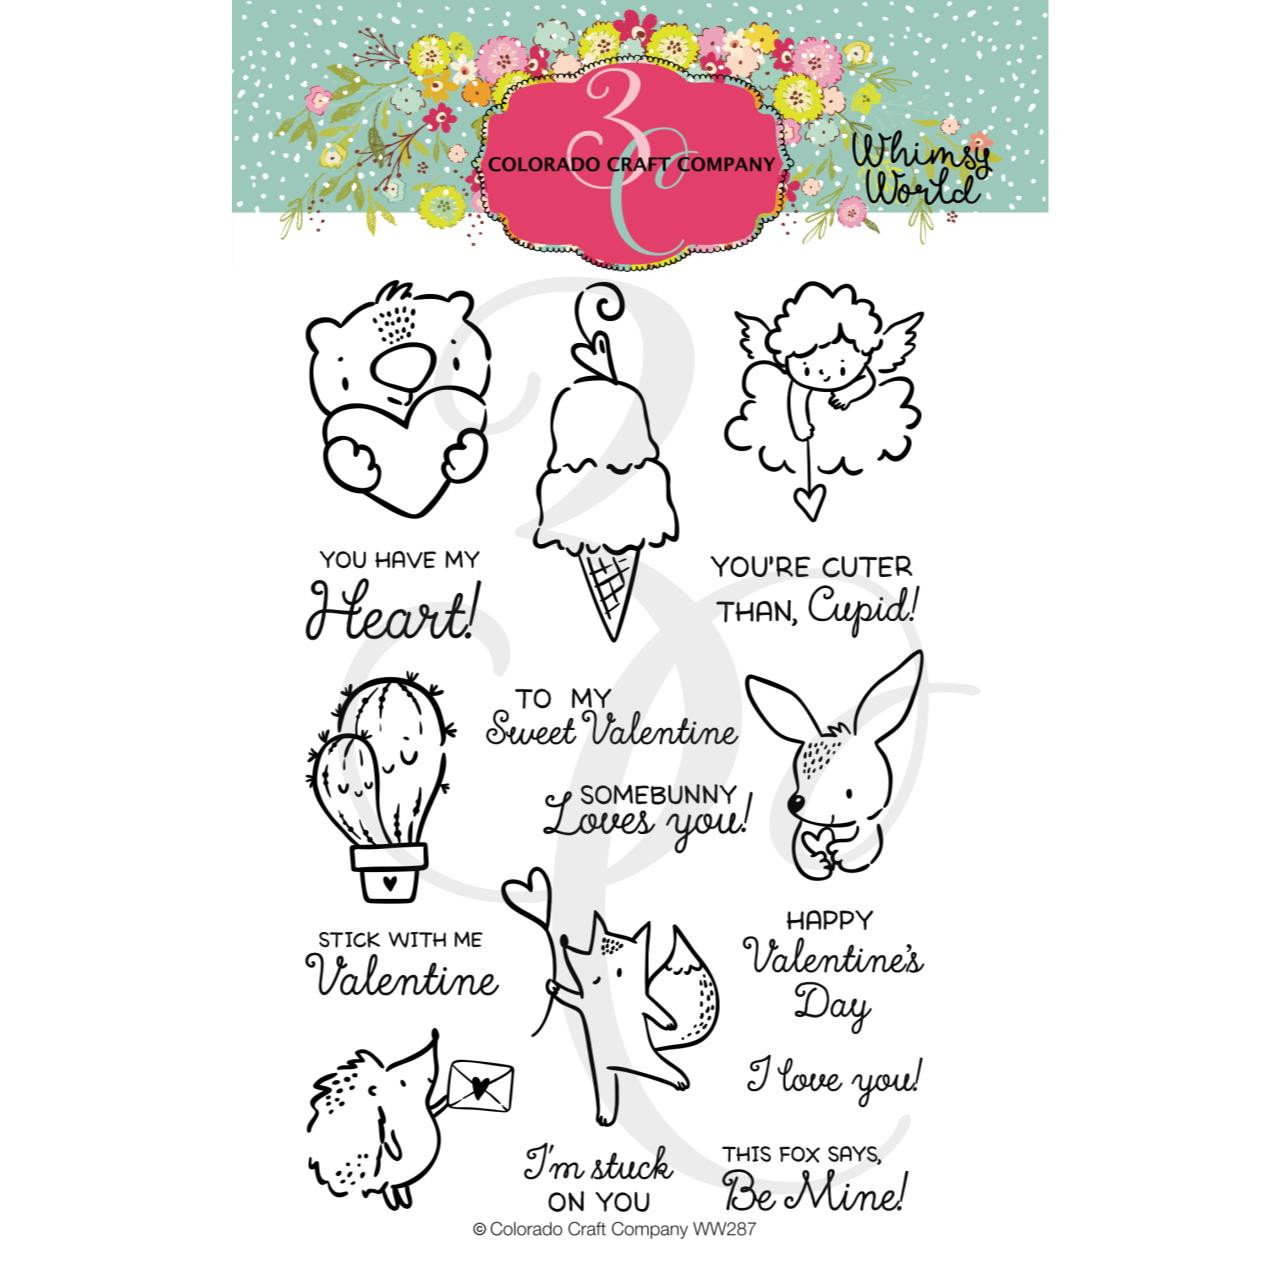 Mini Love Cards, Colorado Craft Company Clear Stamps - 857287008874